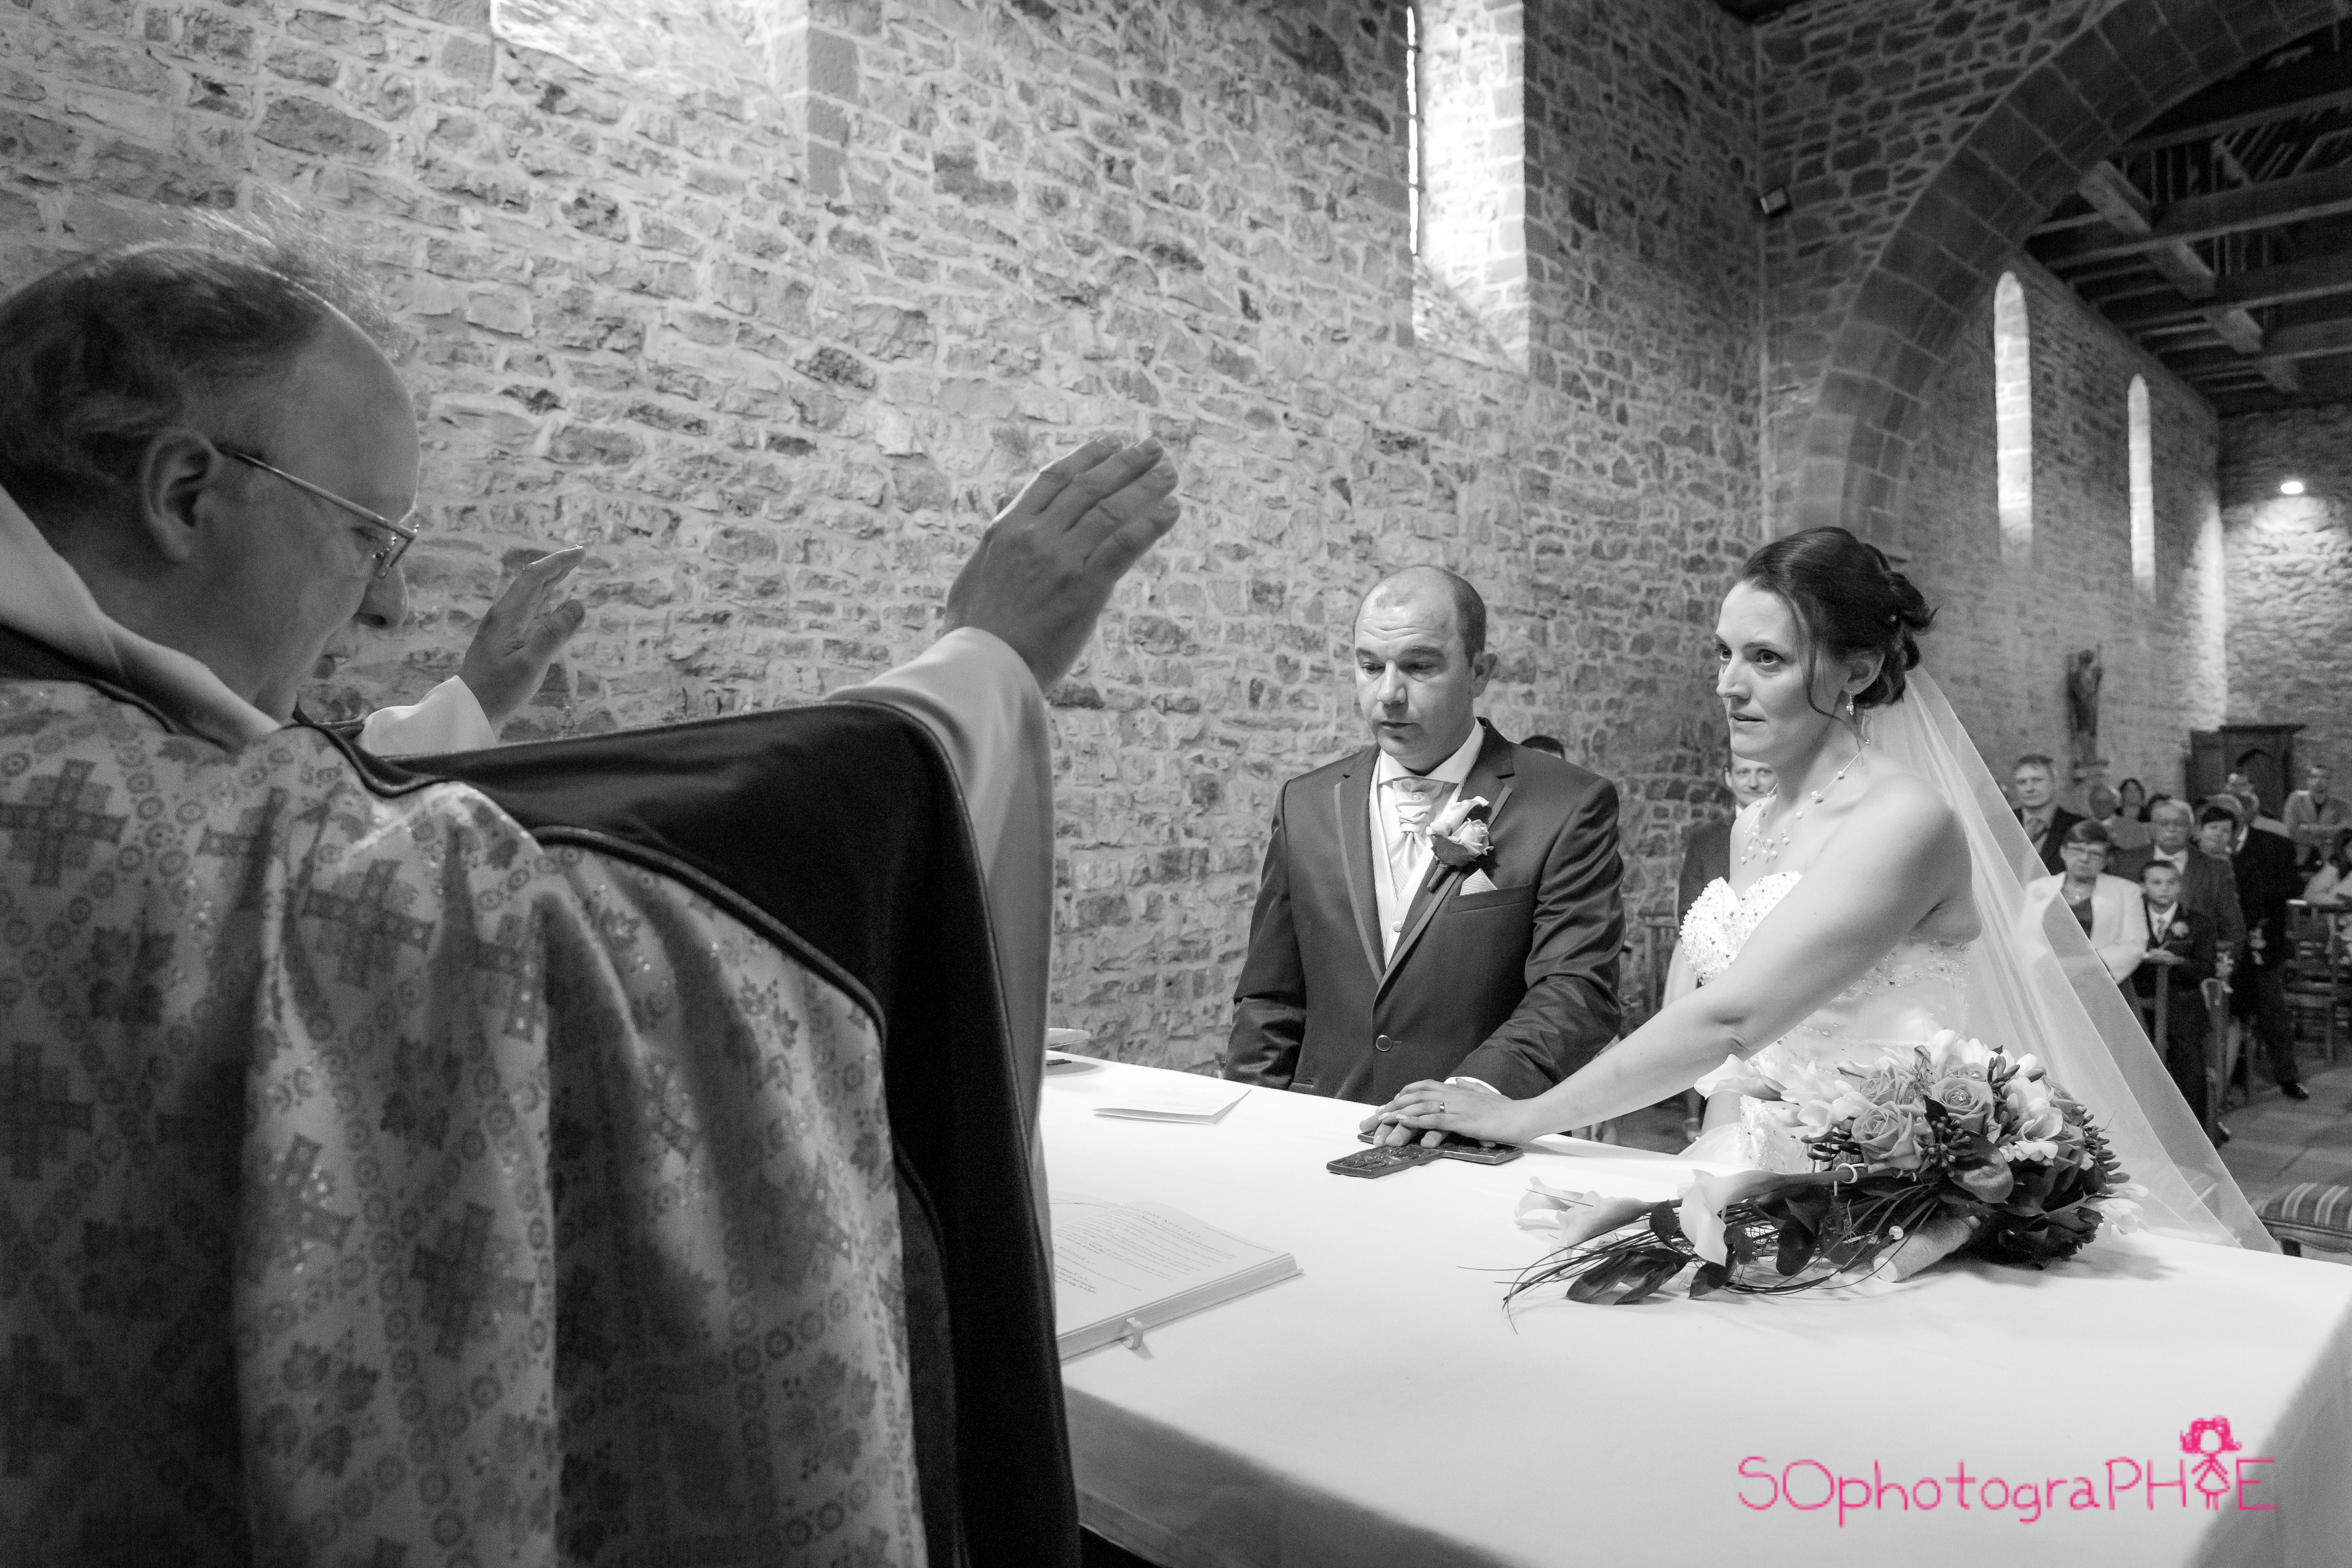 Galerie-mariage-39